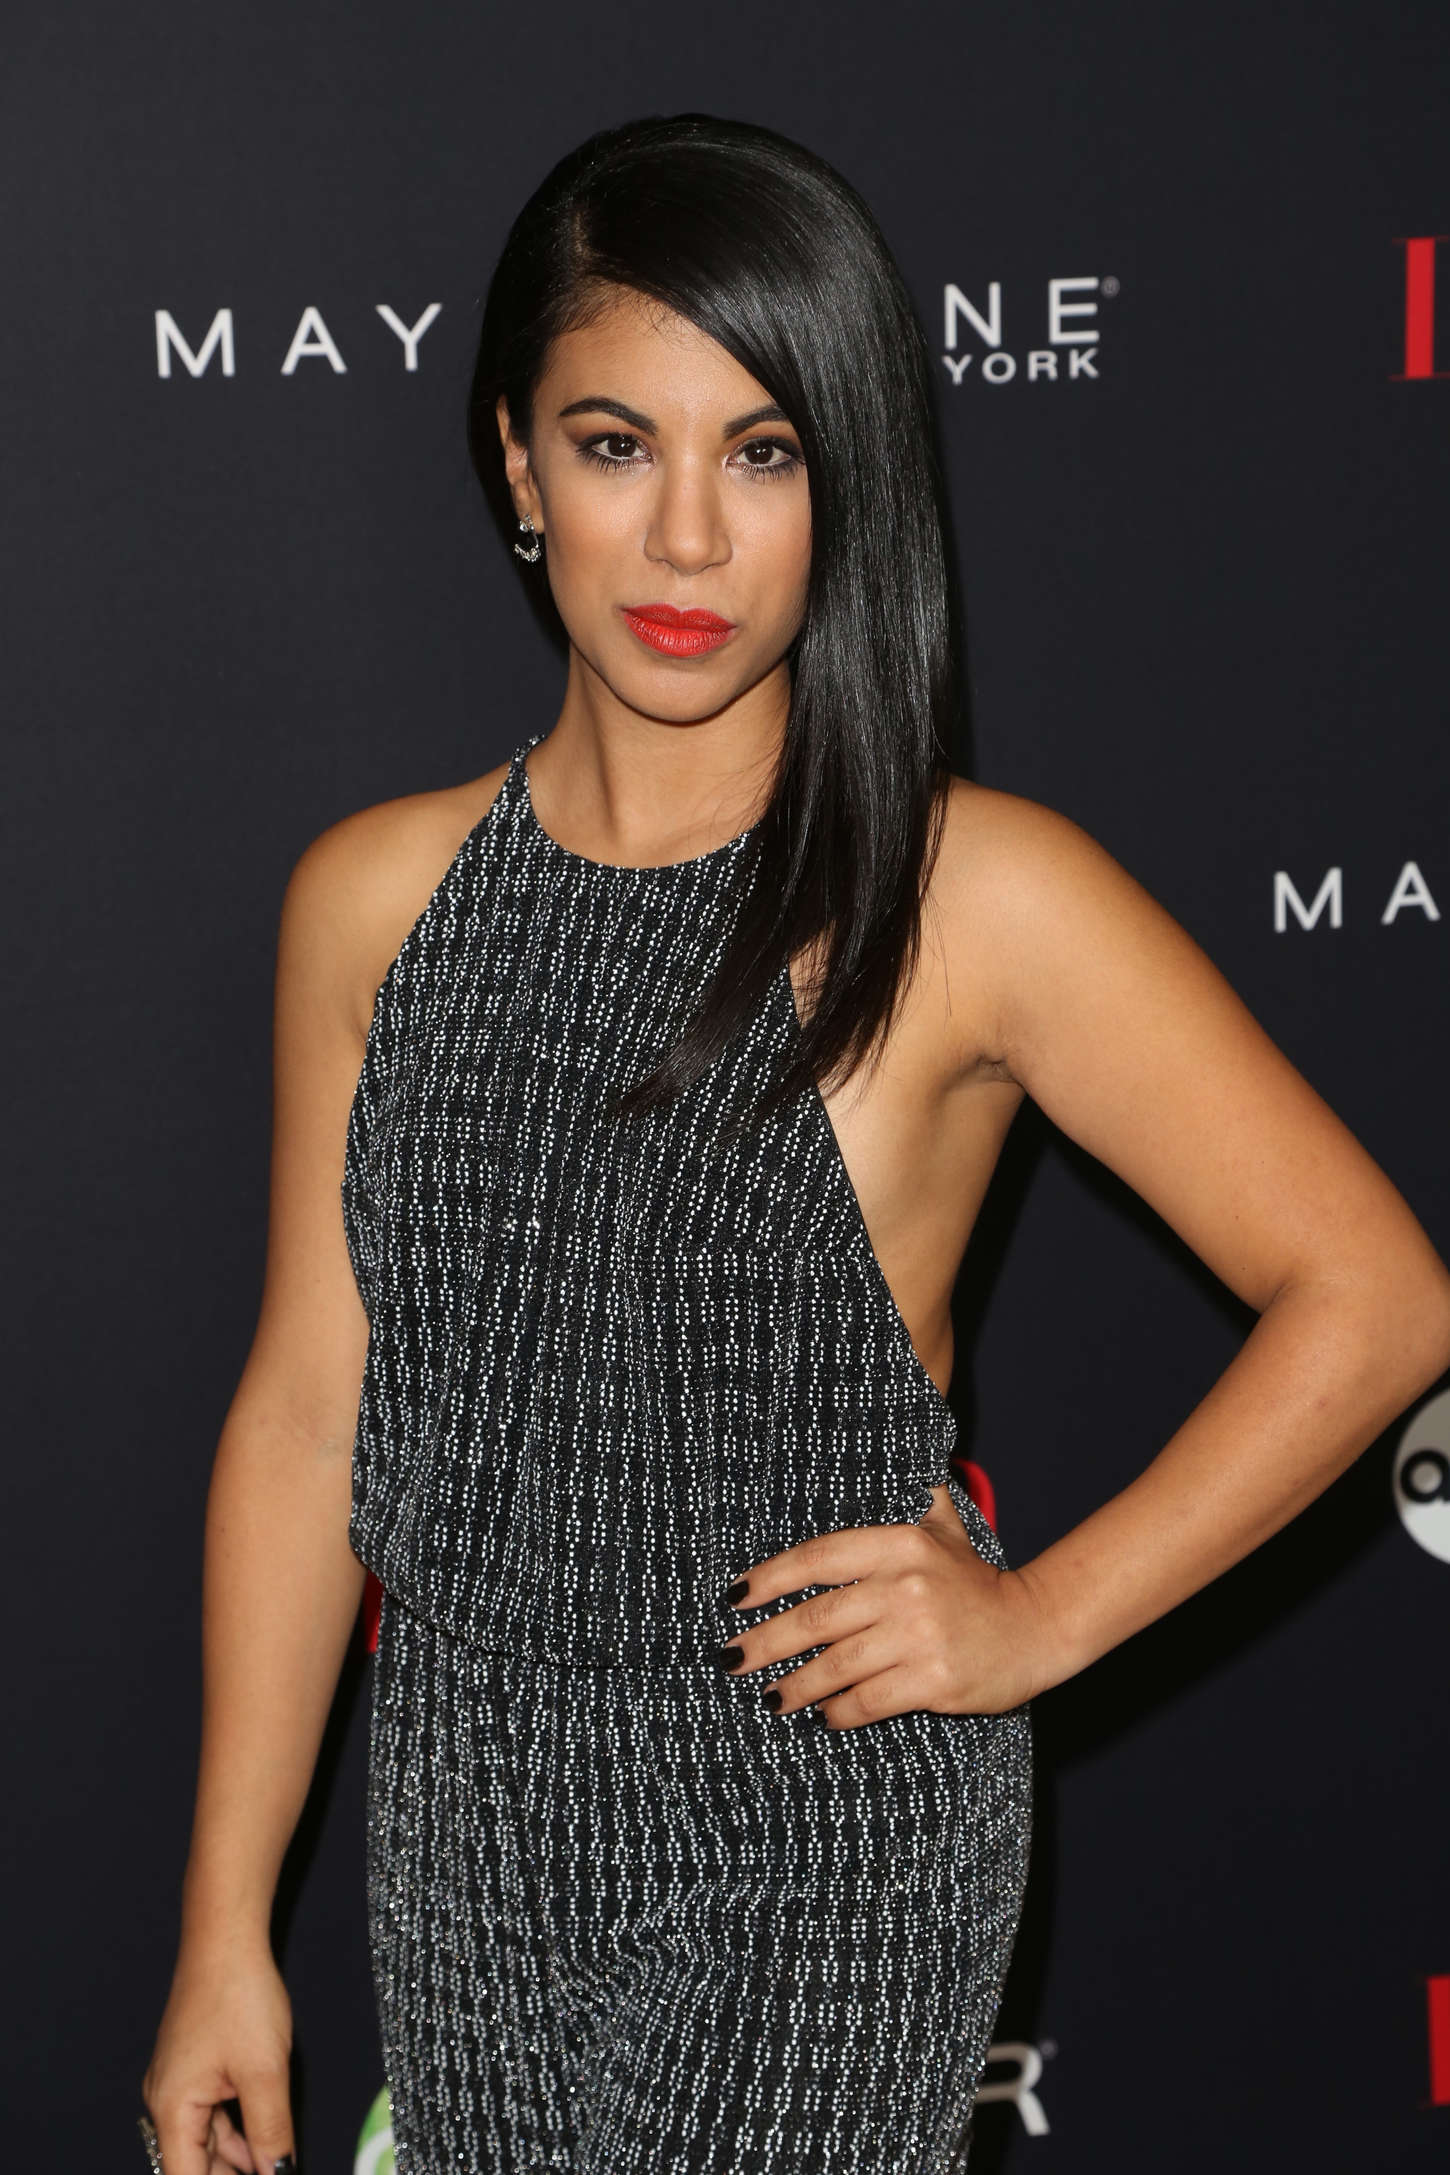 Chrissie Fit Latina Magazines Under Party in West Hollywood